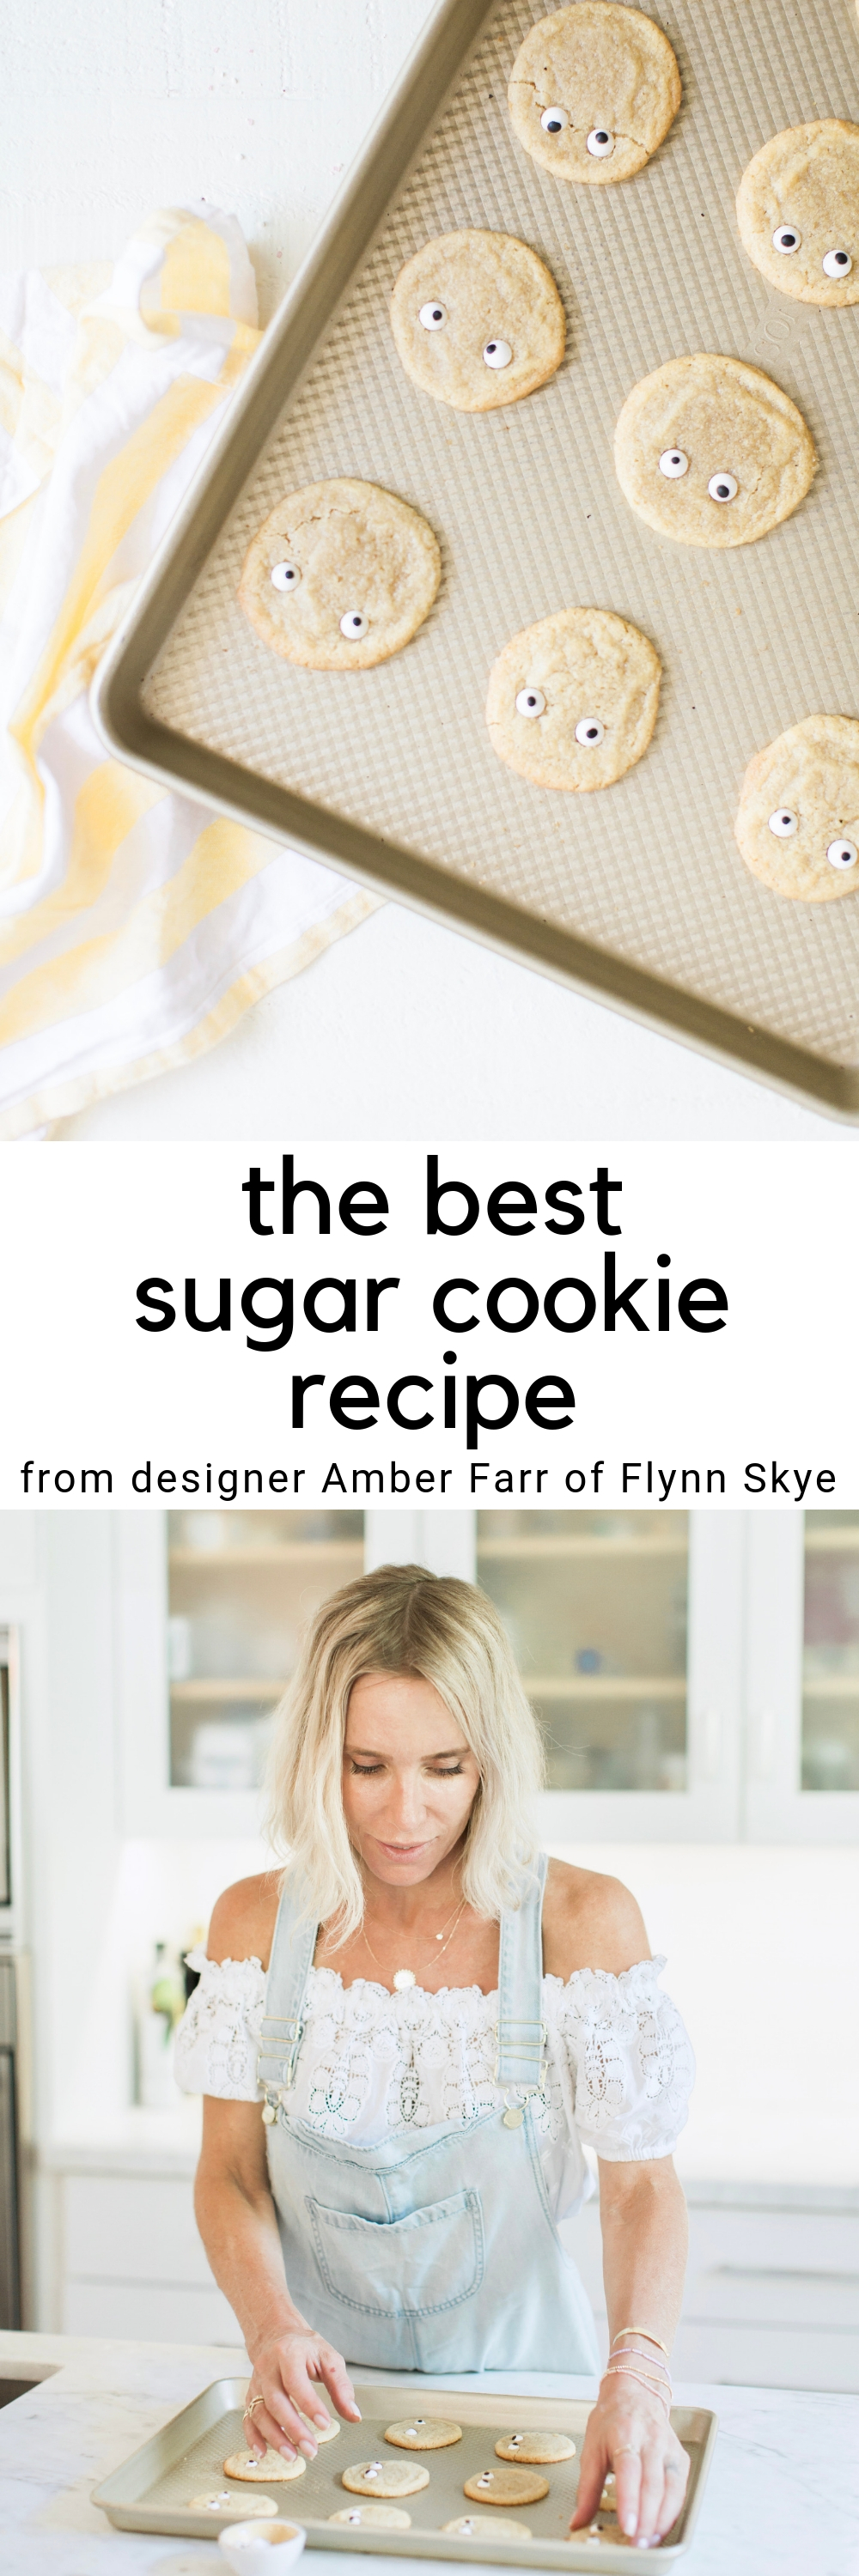 in the kitchen with amber Farr of Flynn skye